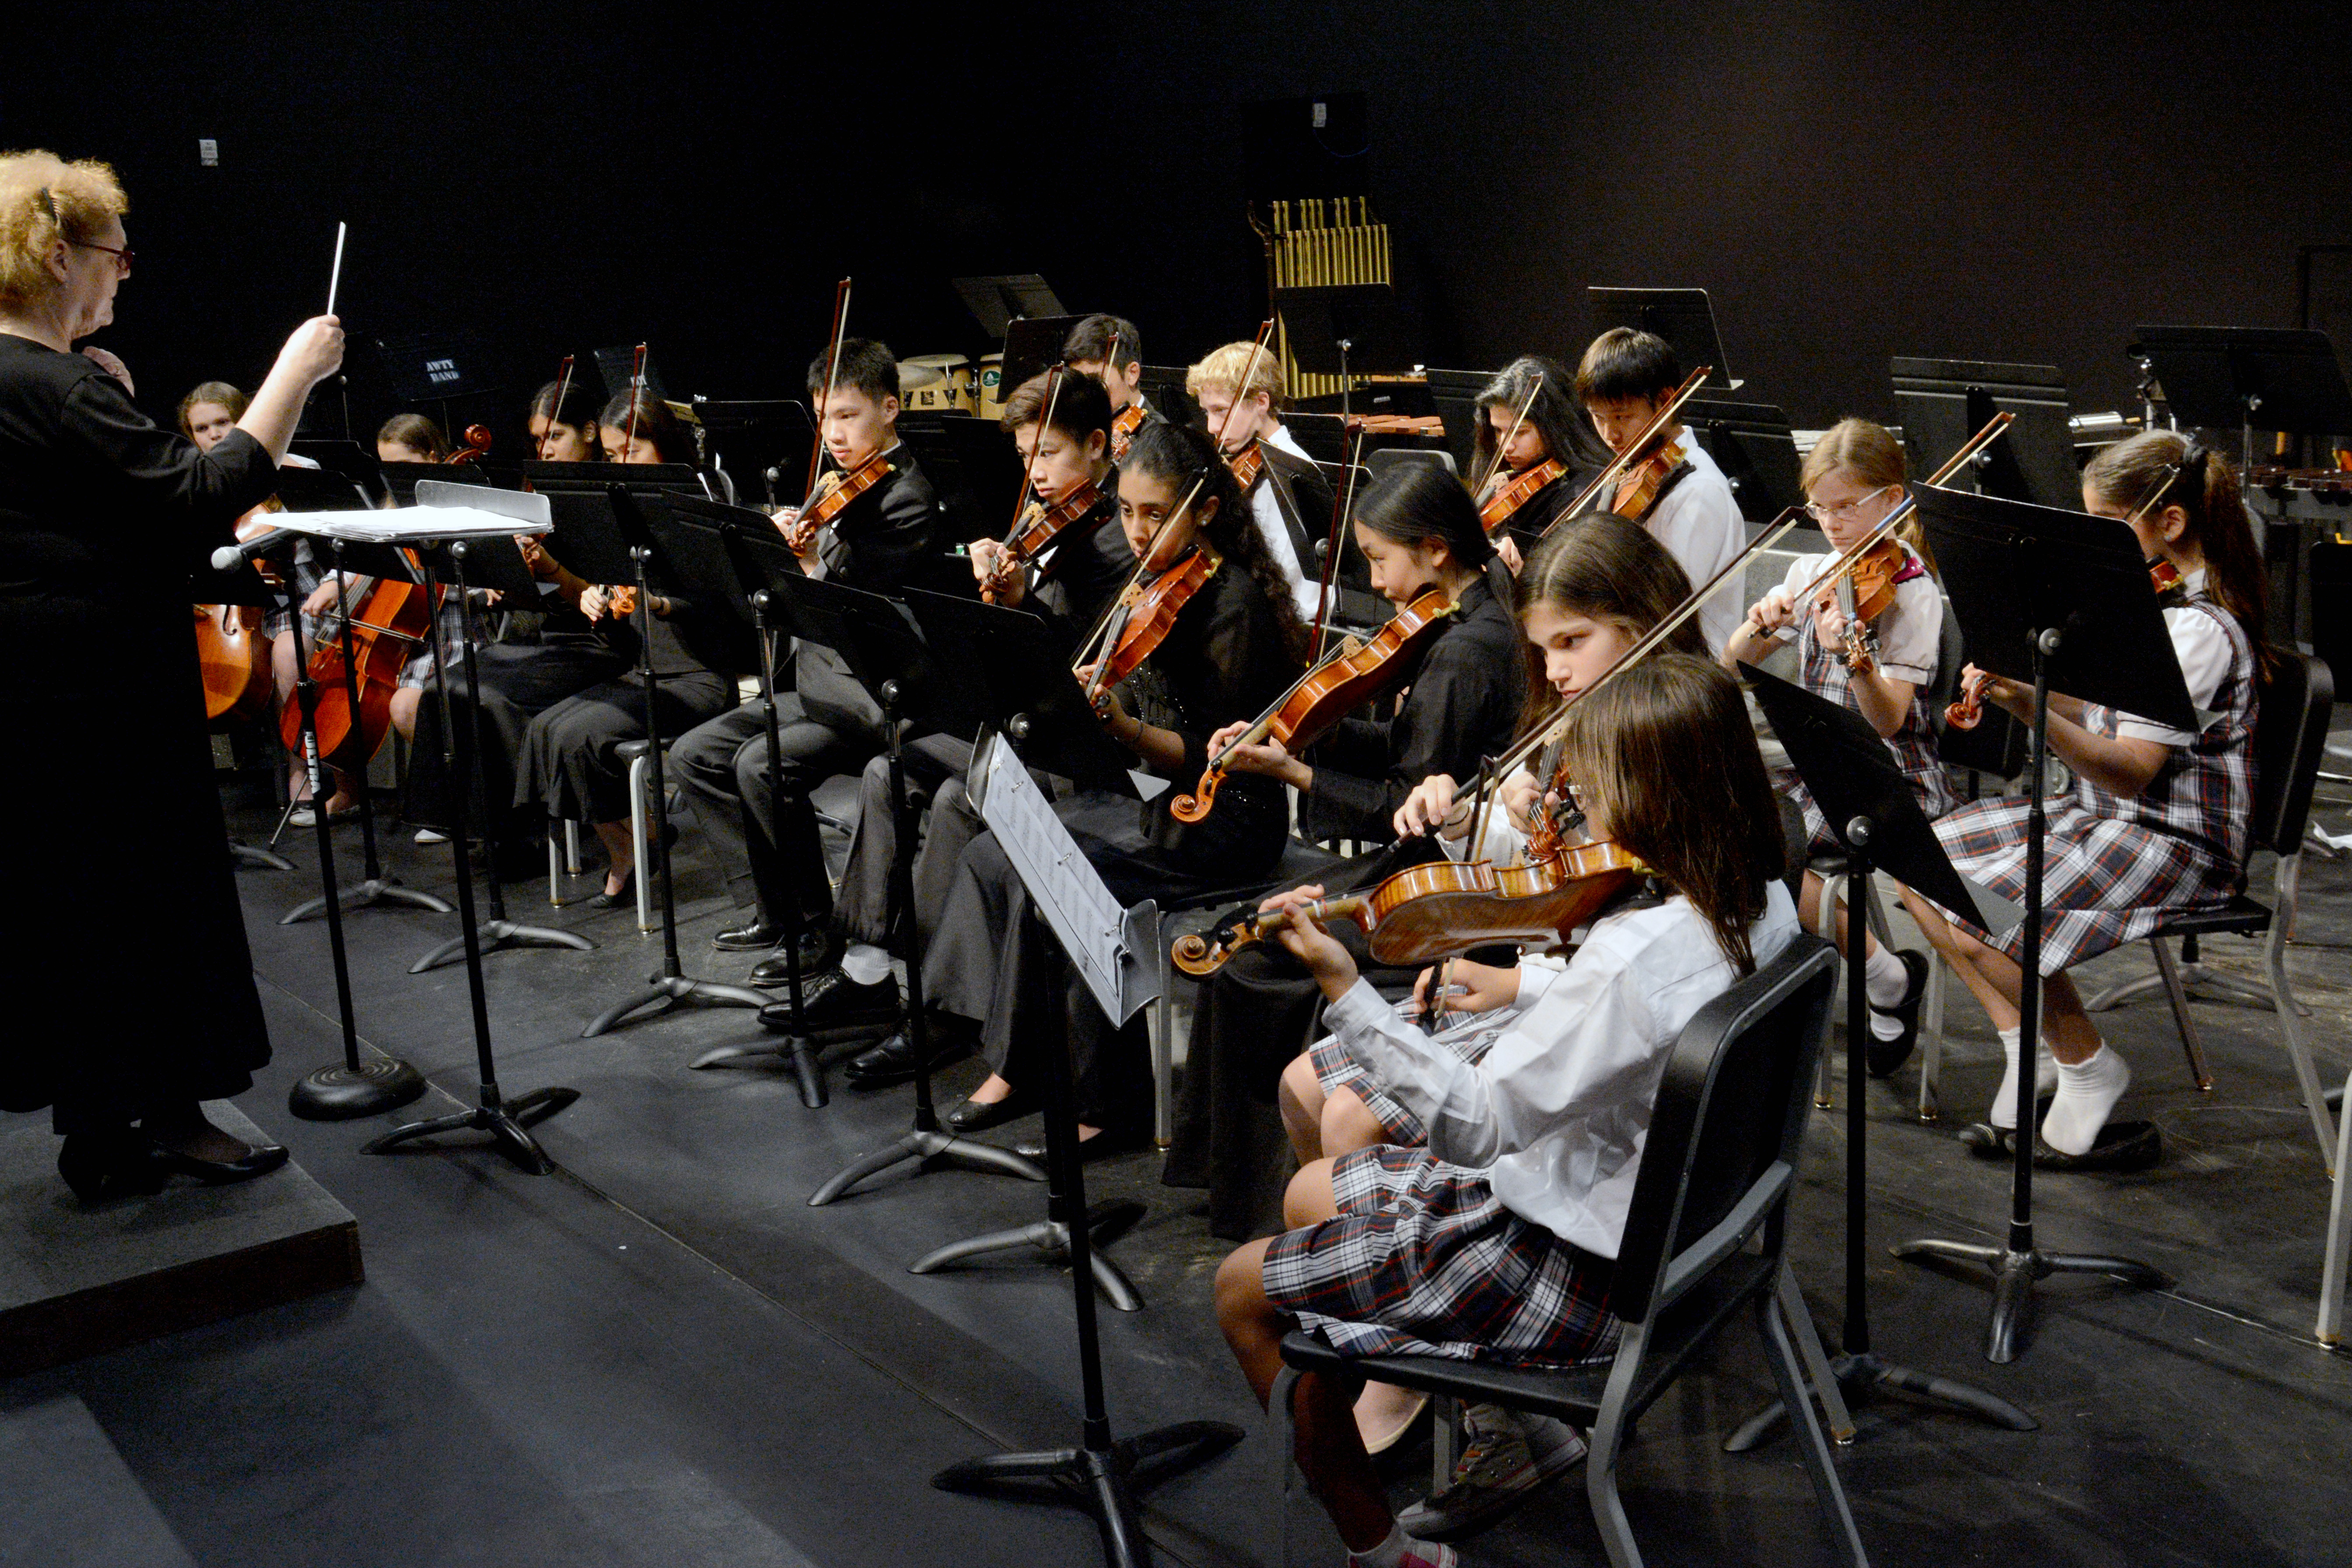 awty orchestra playing on stage